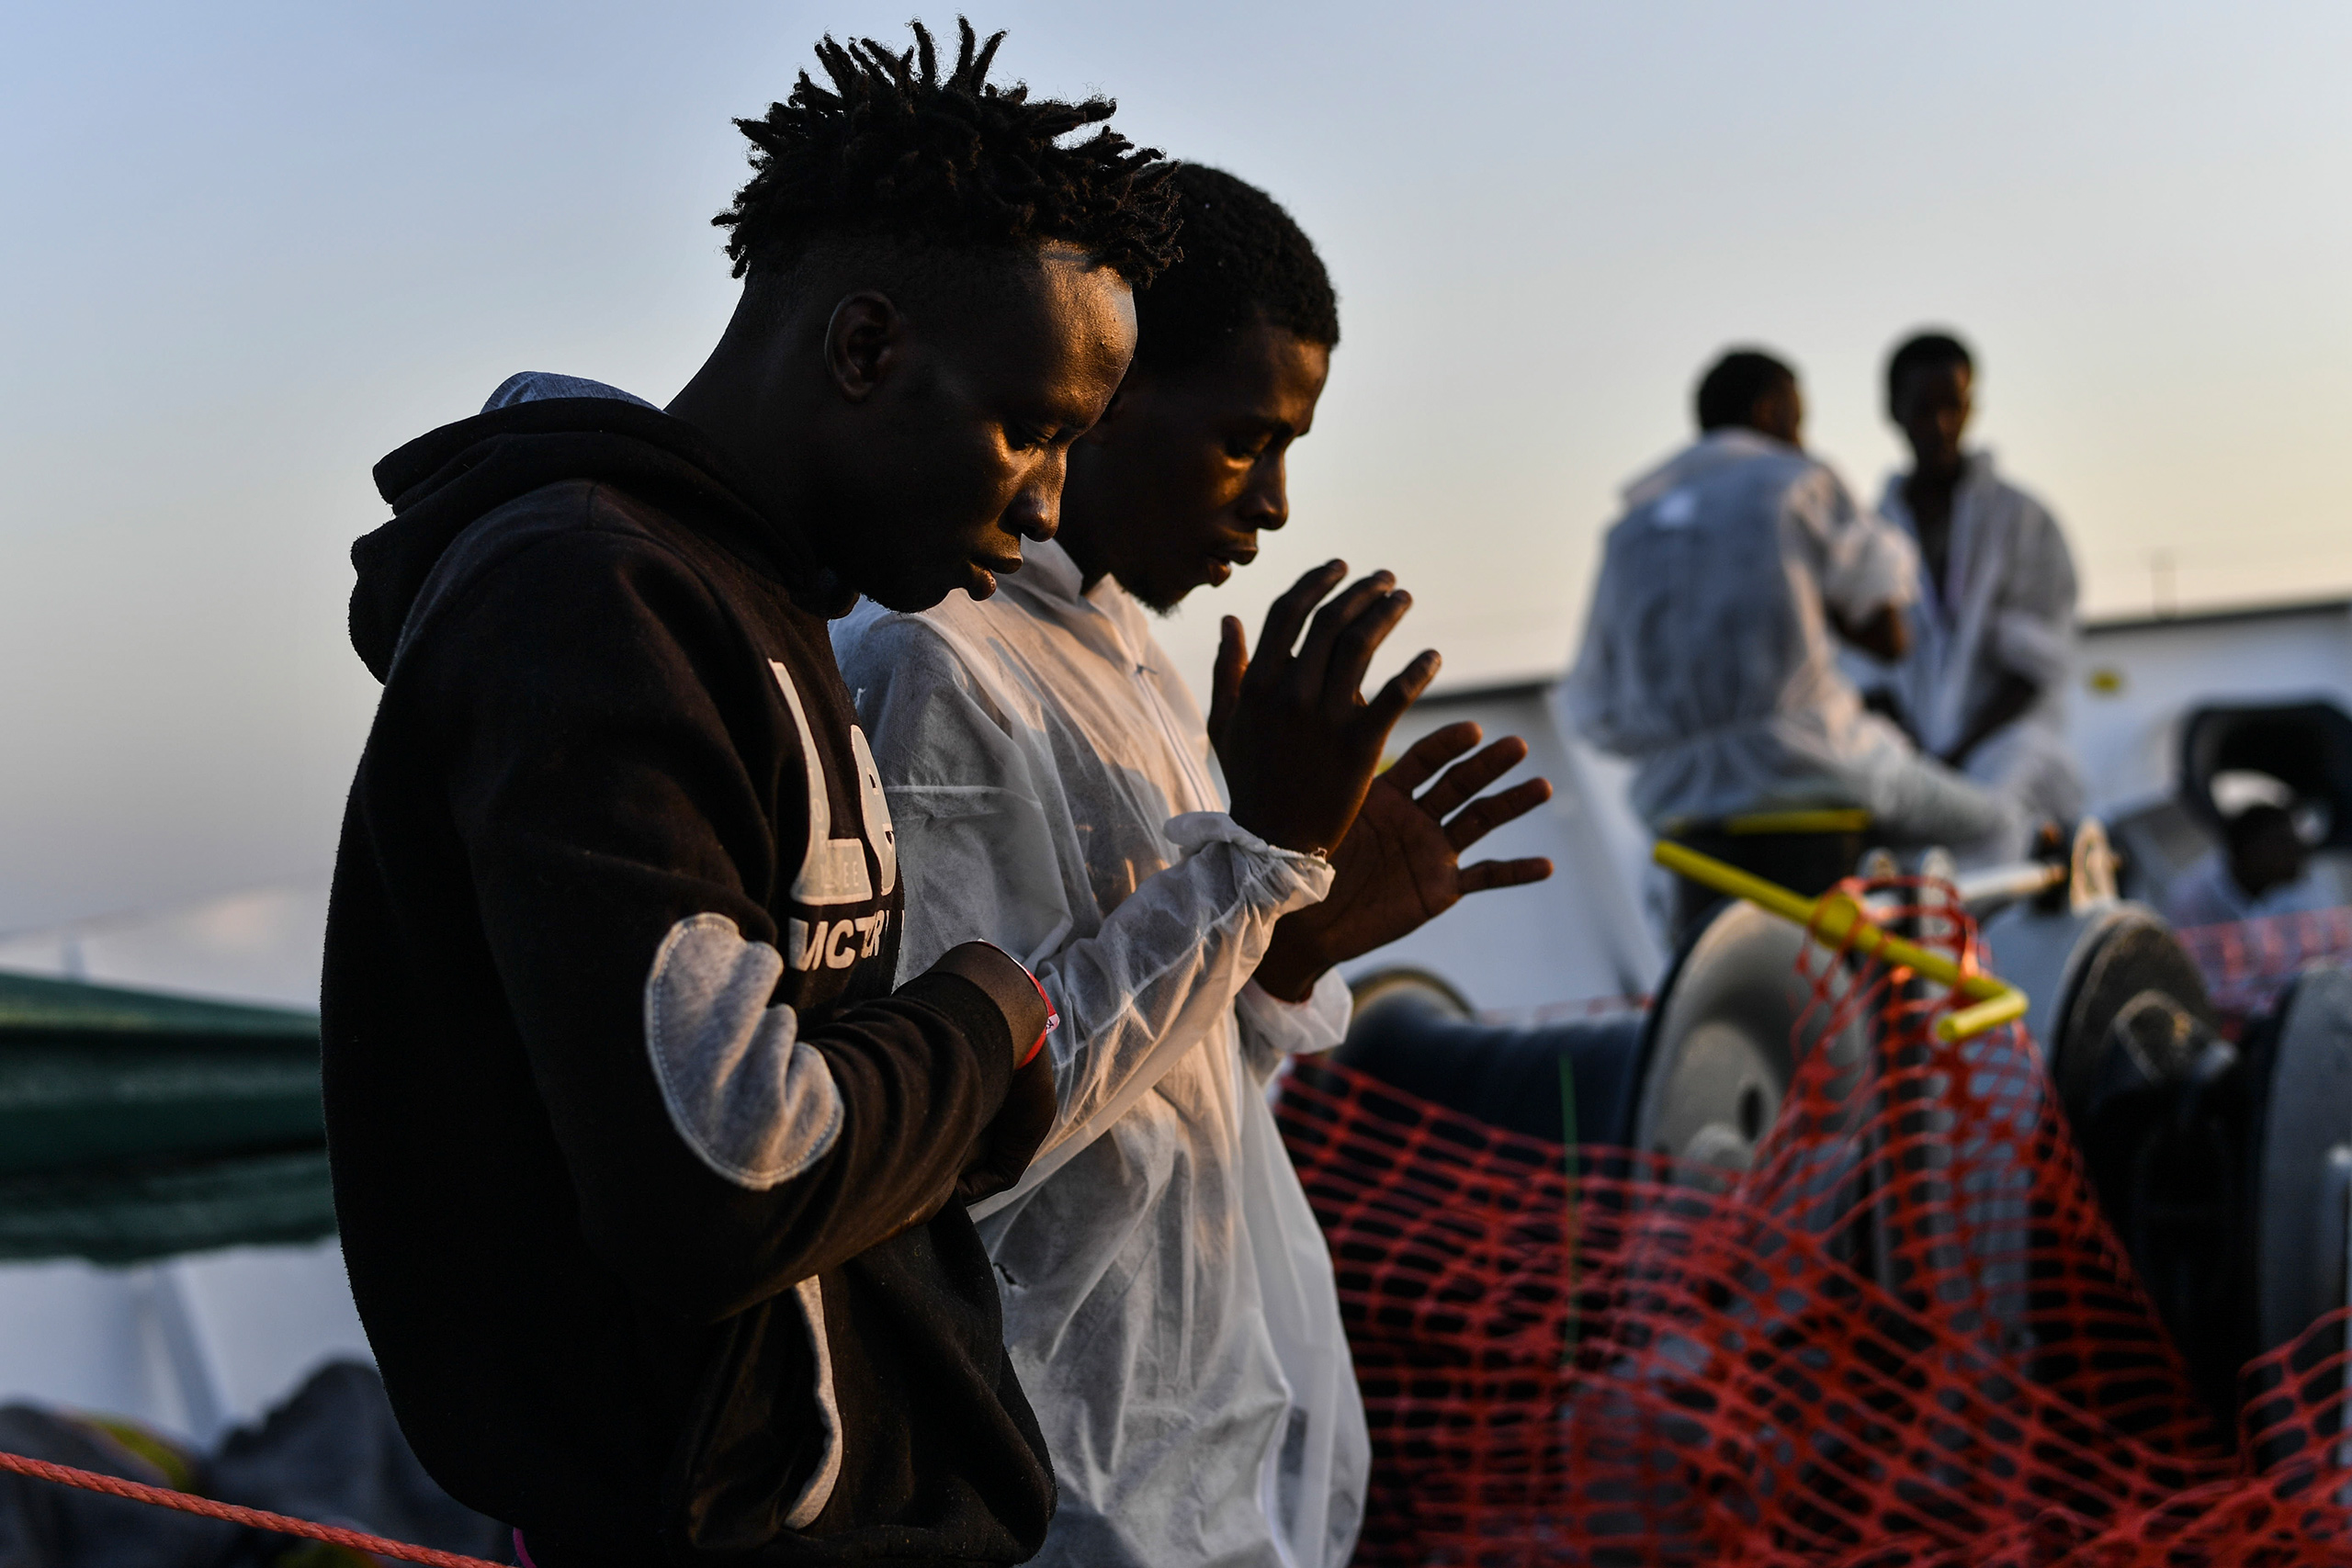 Muslim migrants in prayer on the deck of the MV Aquarius, Aug. 22, 2016.